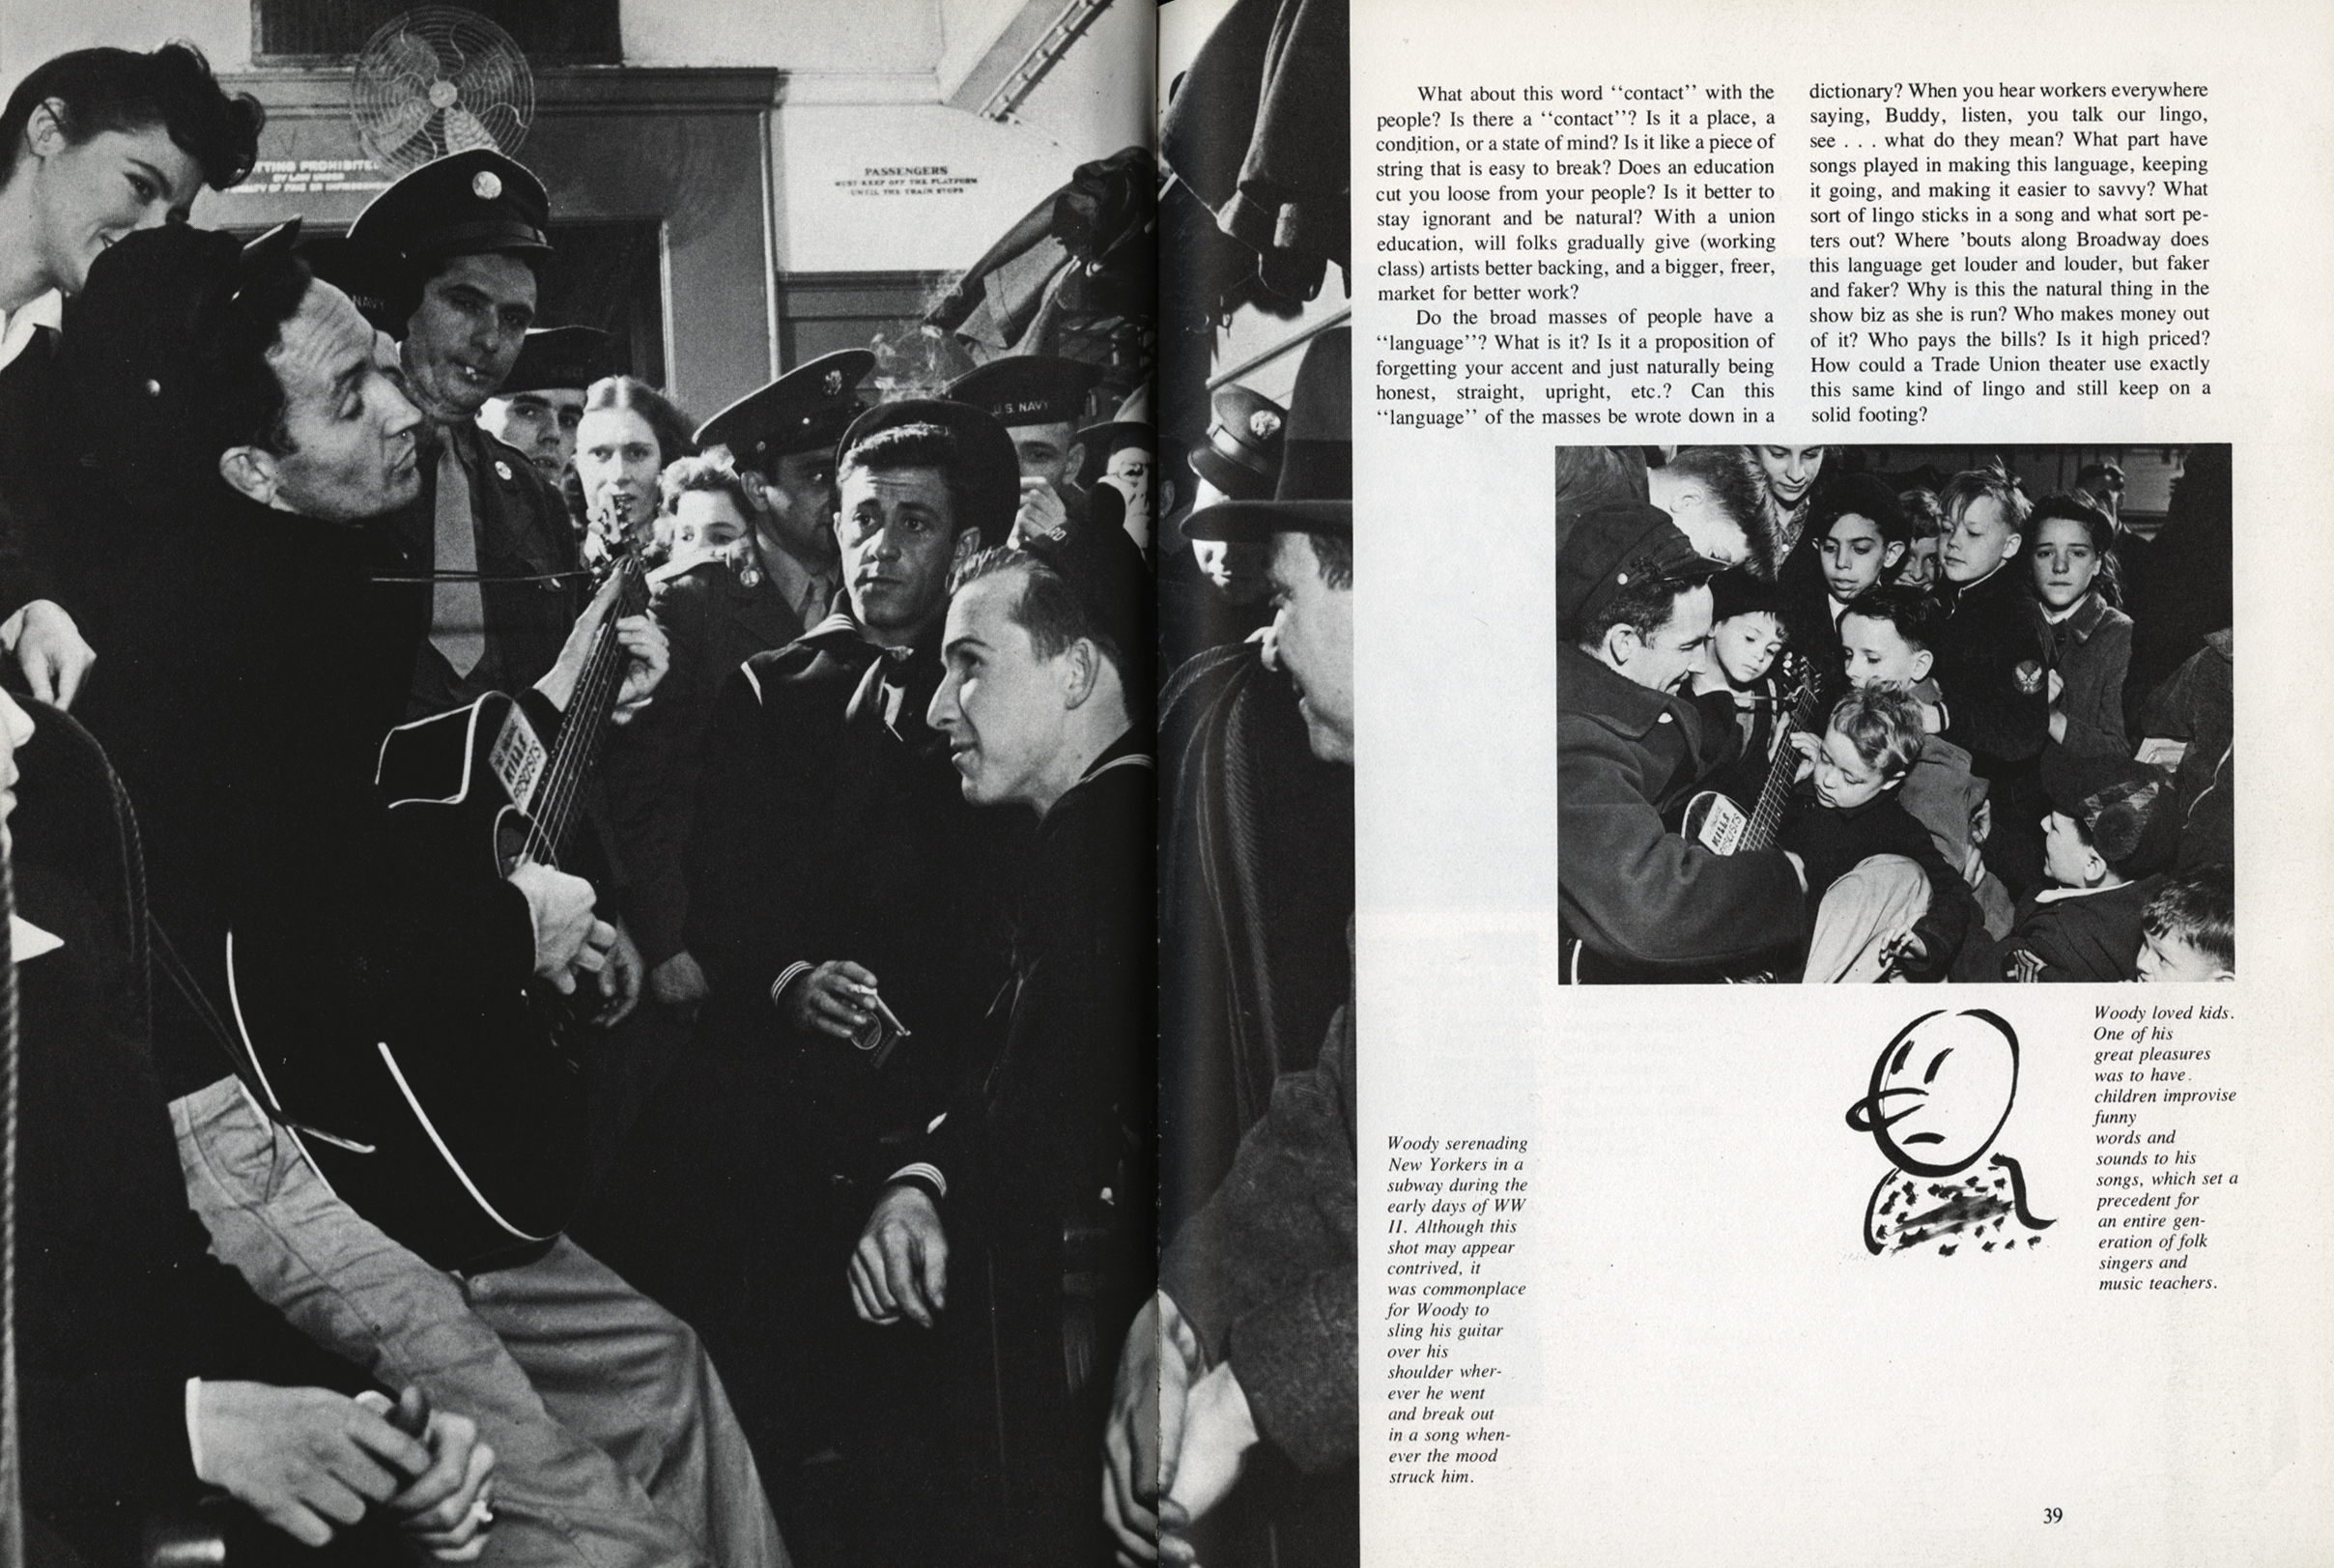 A spread from Woody Guthrie's songbook.